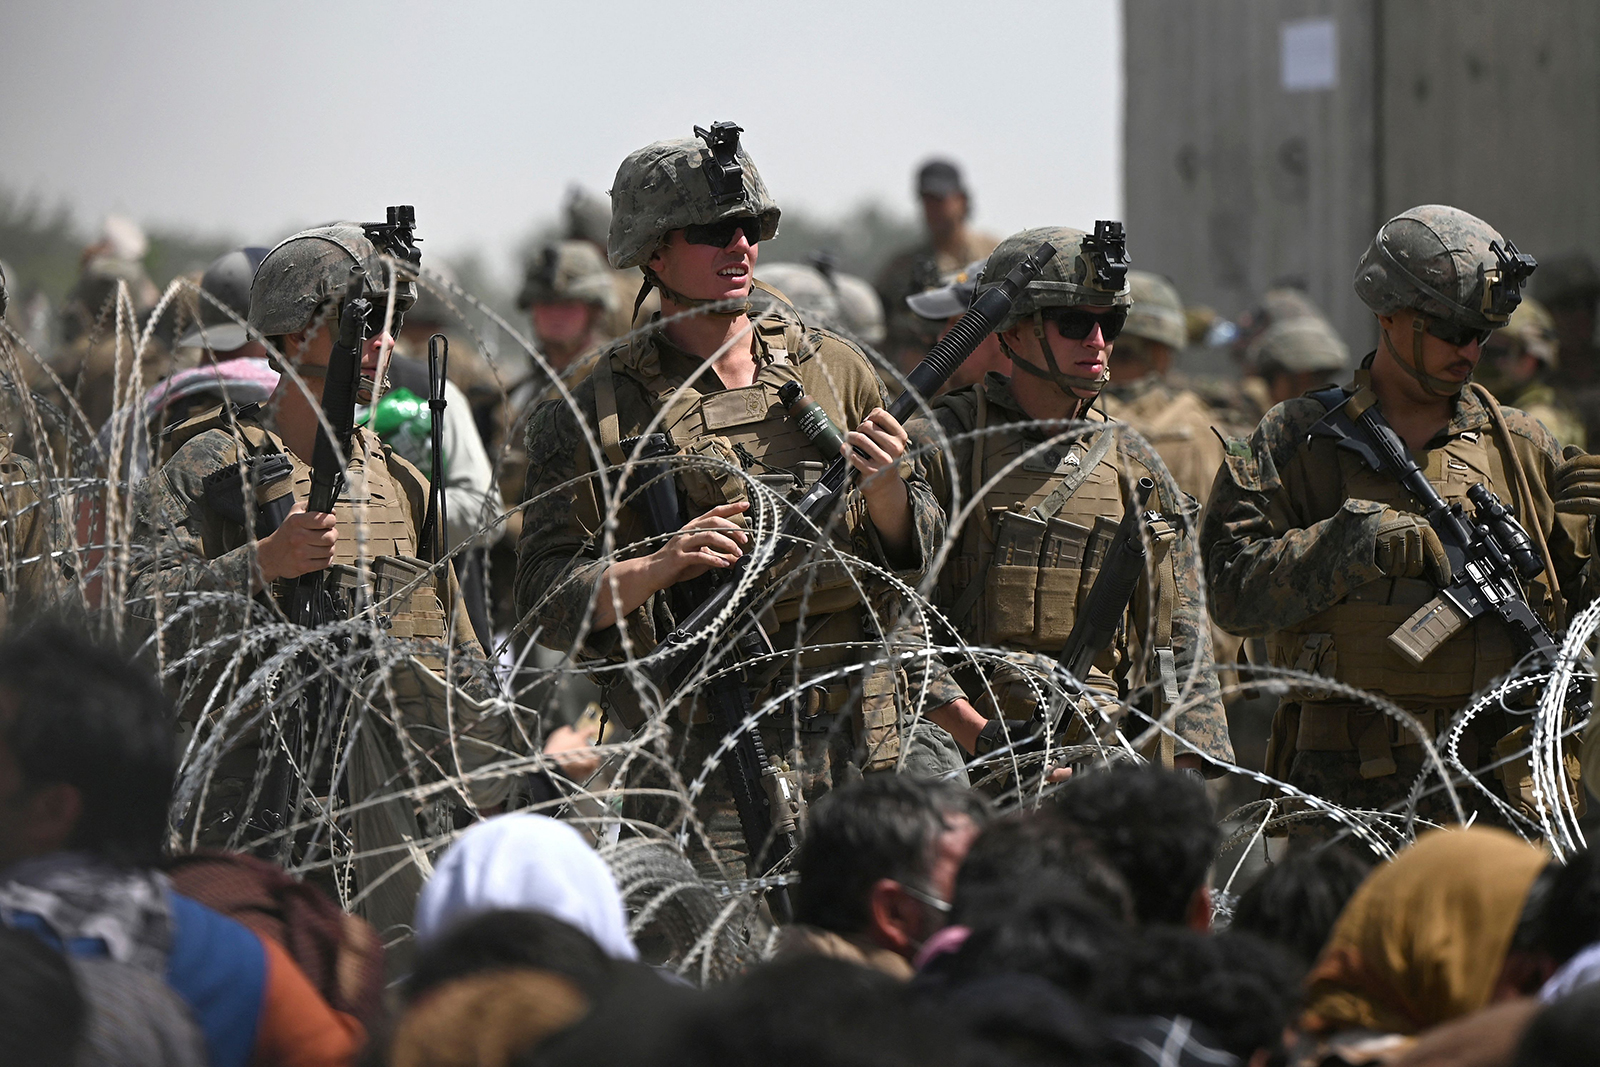 US soldiers stand guard behind barbed wire as Afghans sit on a roadside near the military part of the airport in Kabul on August 20.